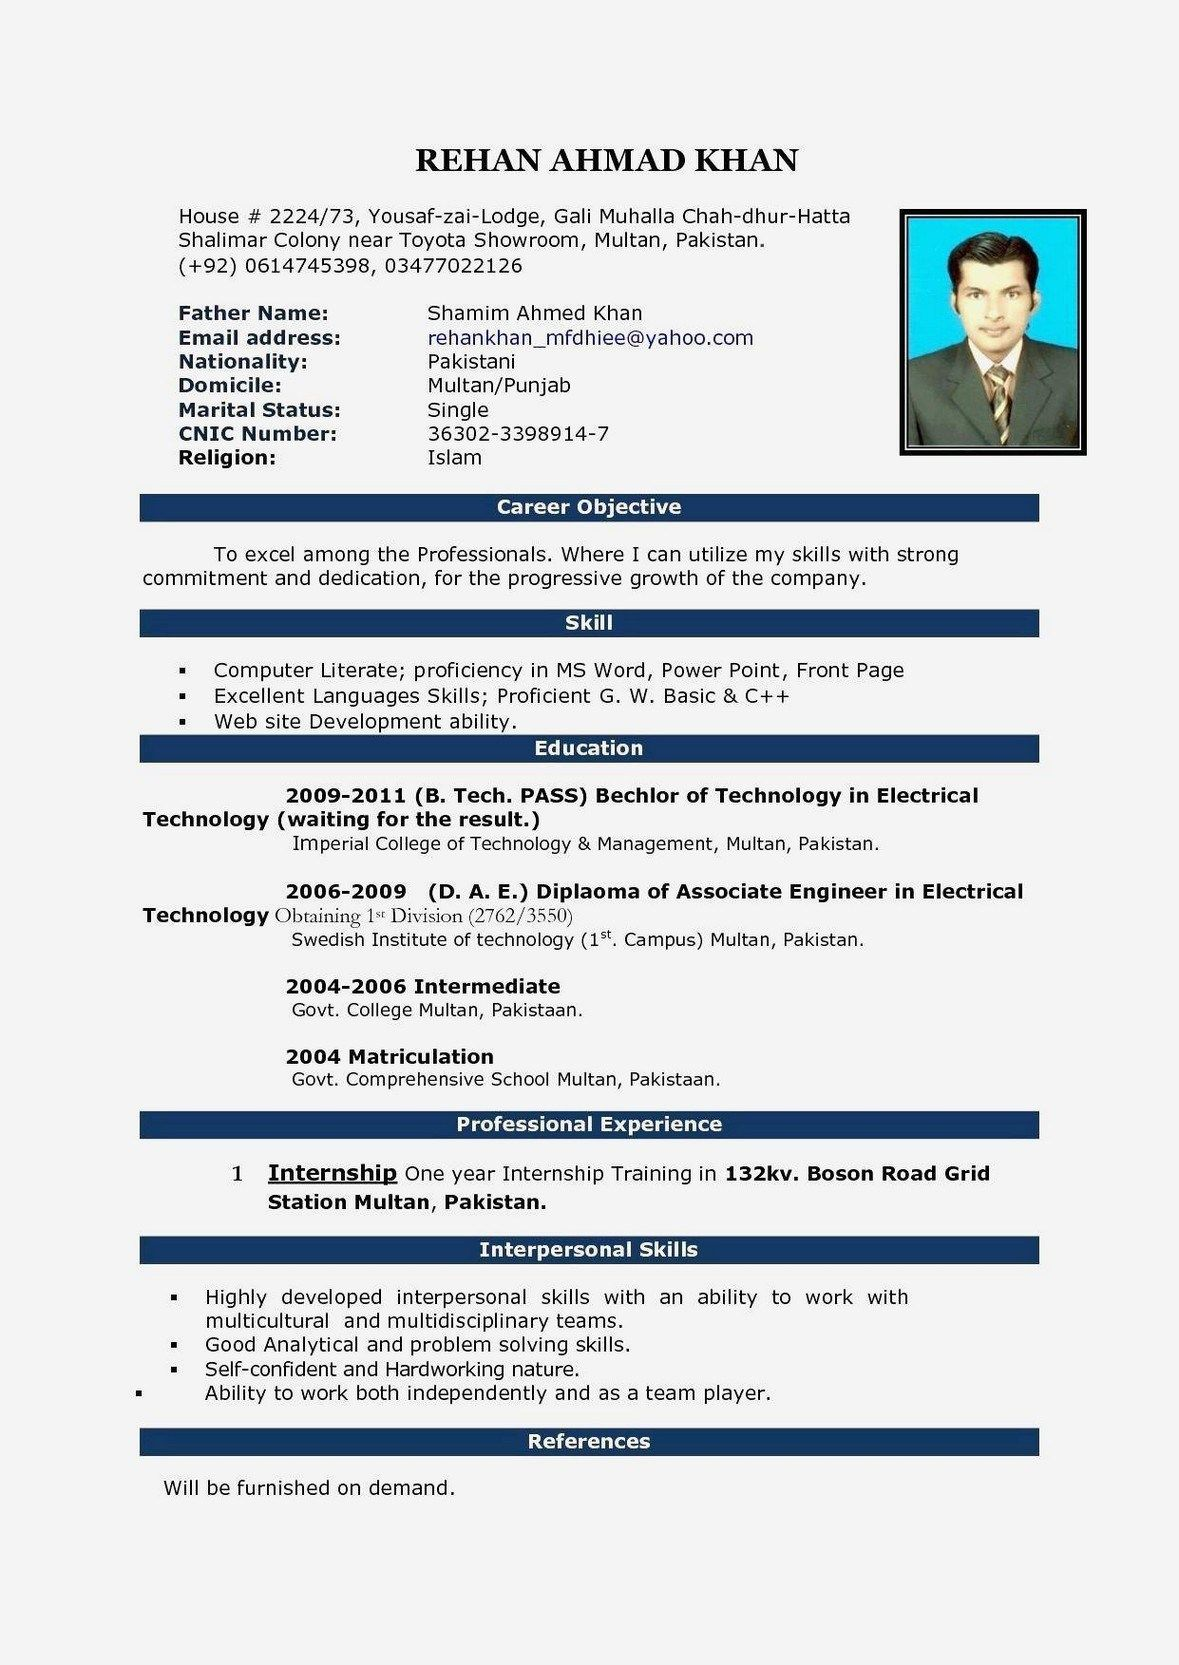 Best Word Resume Templates With Images Resume Format Download